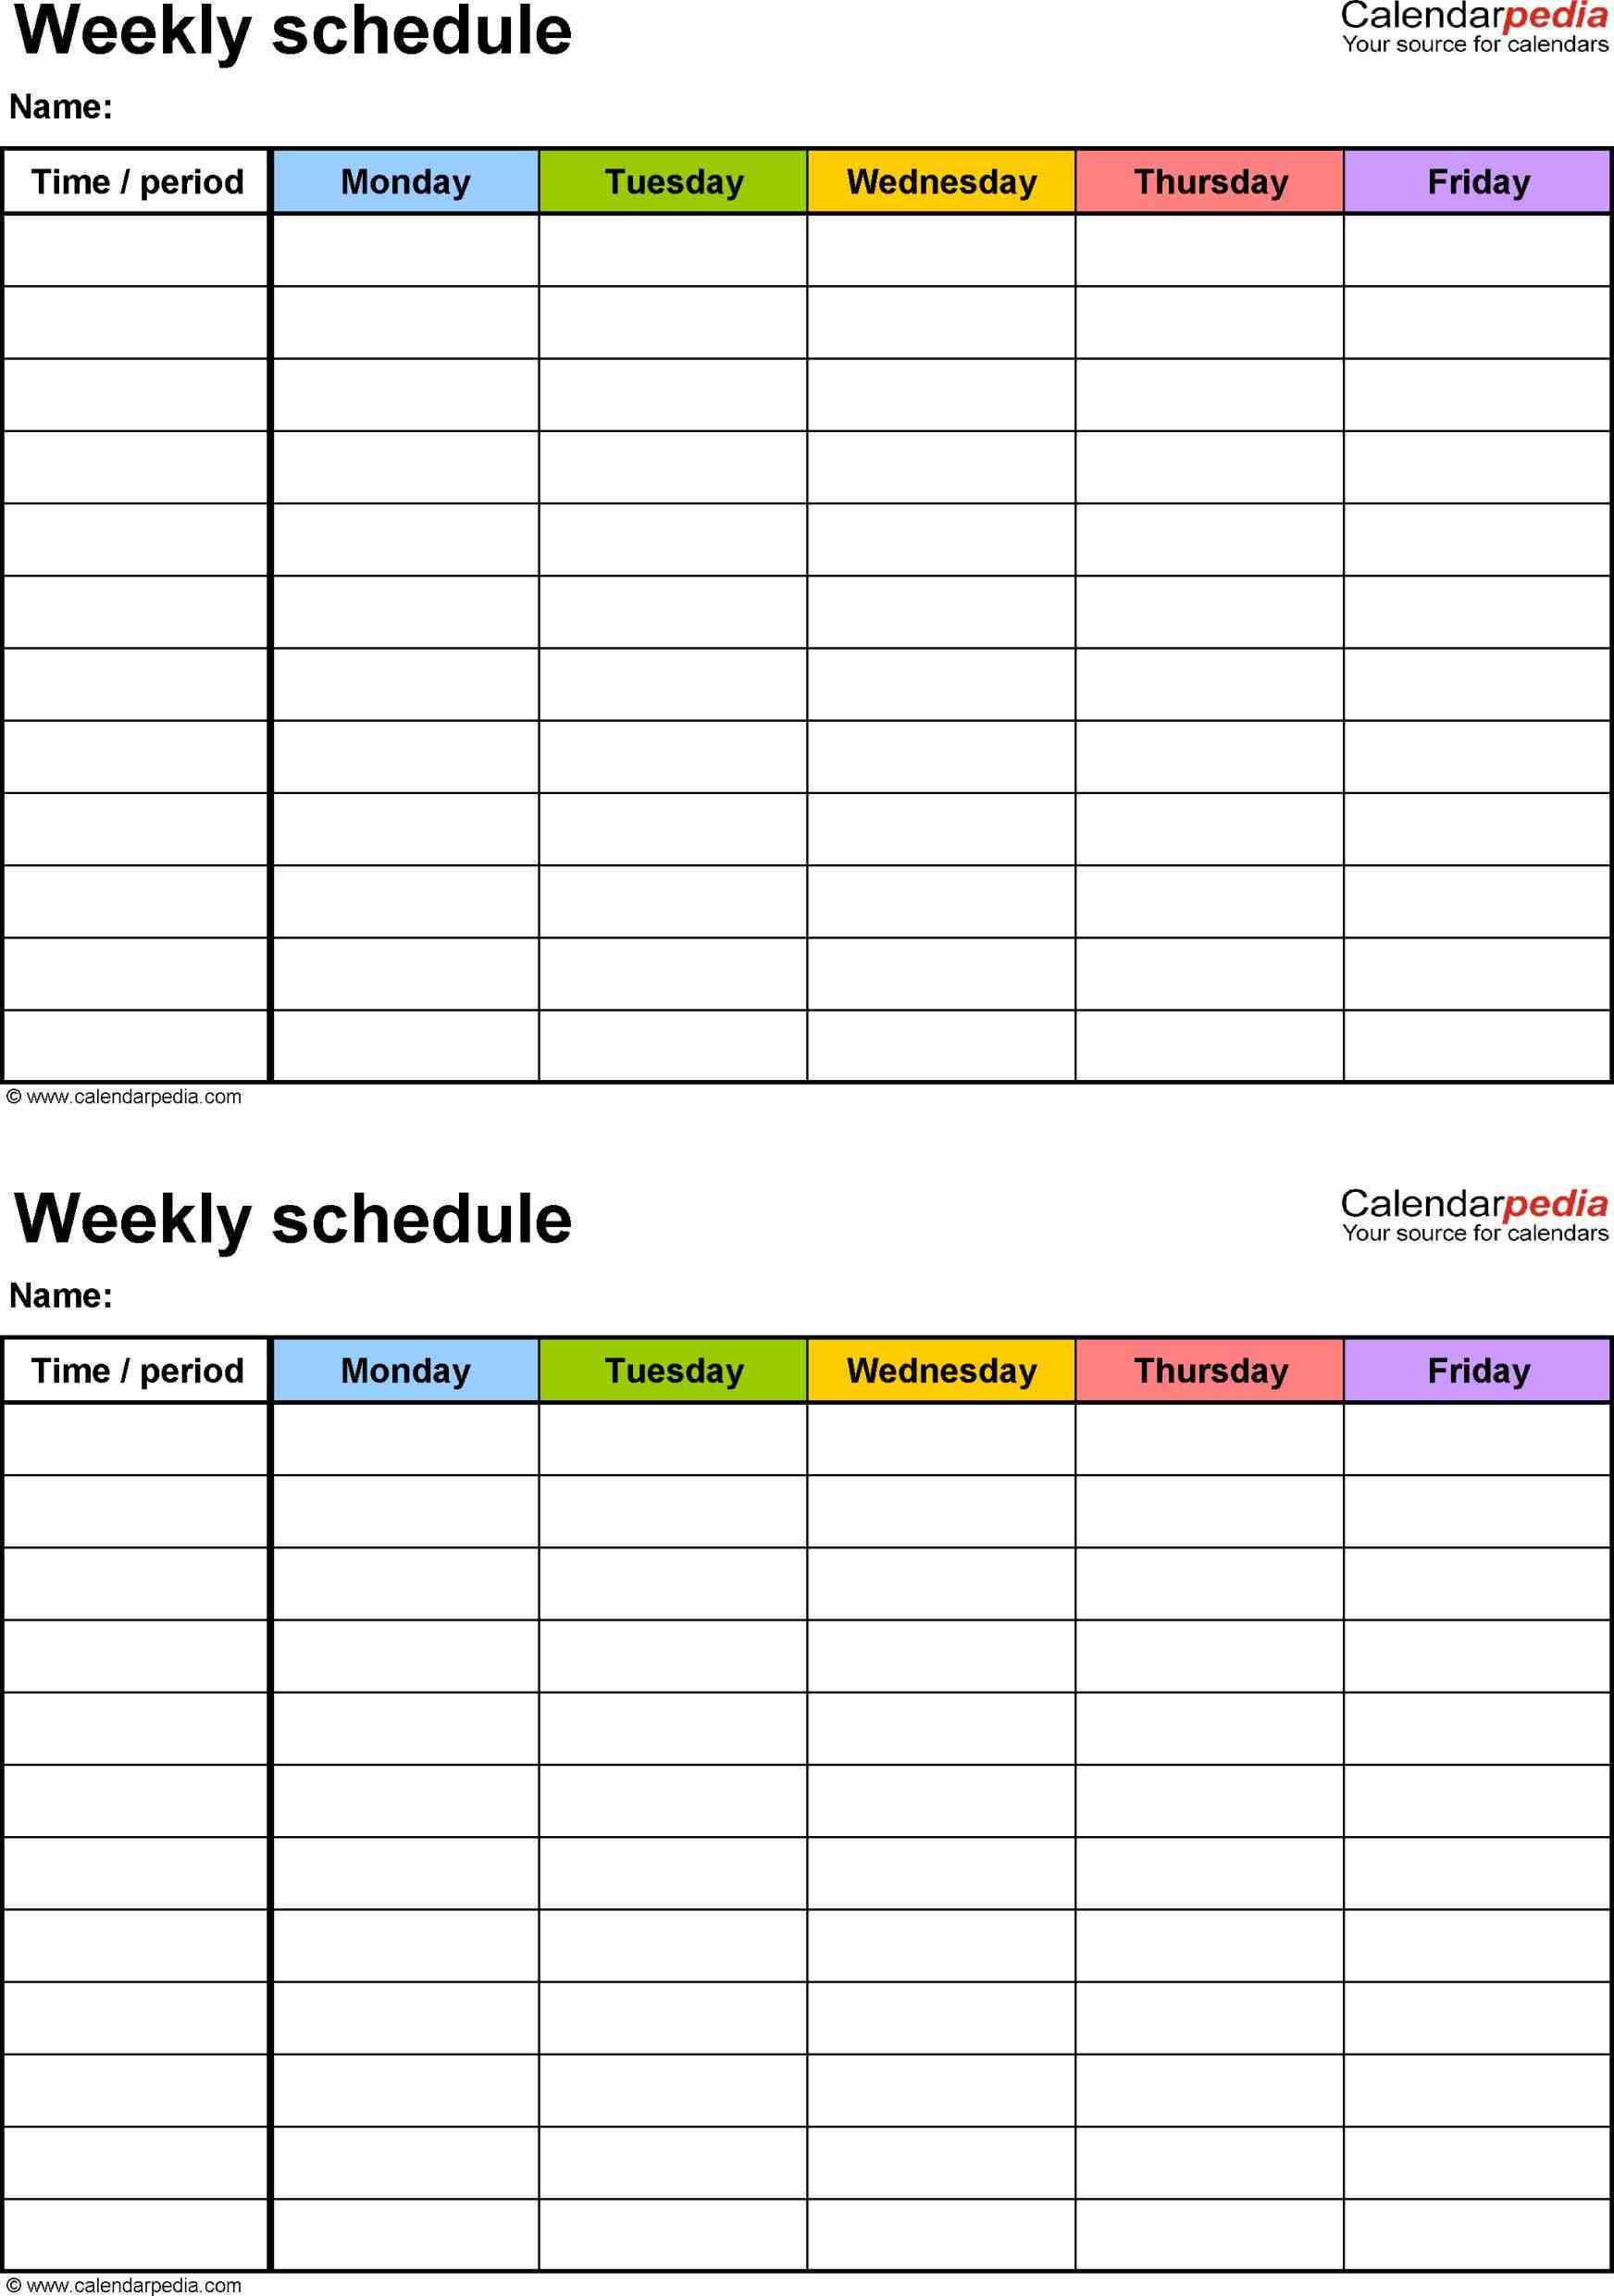 free online day planner template | weeklyplanner.website